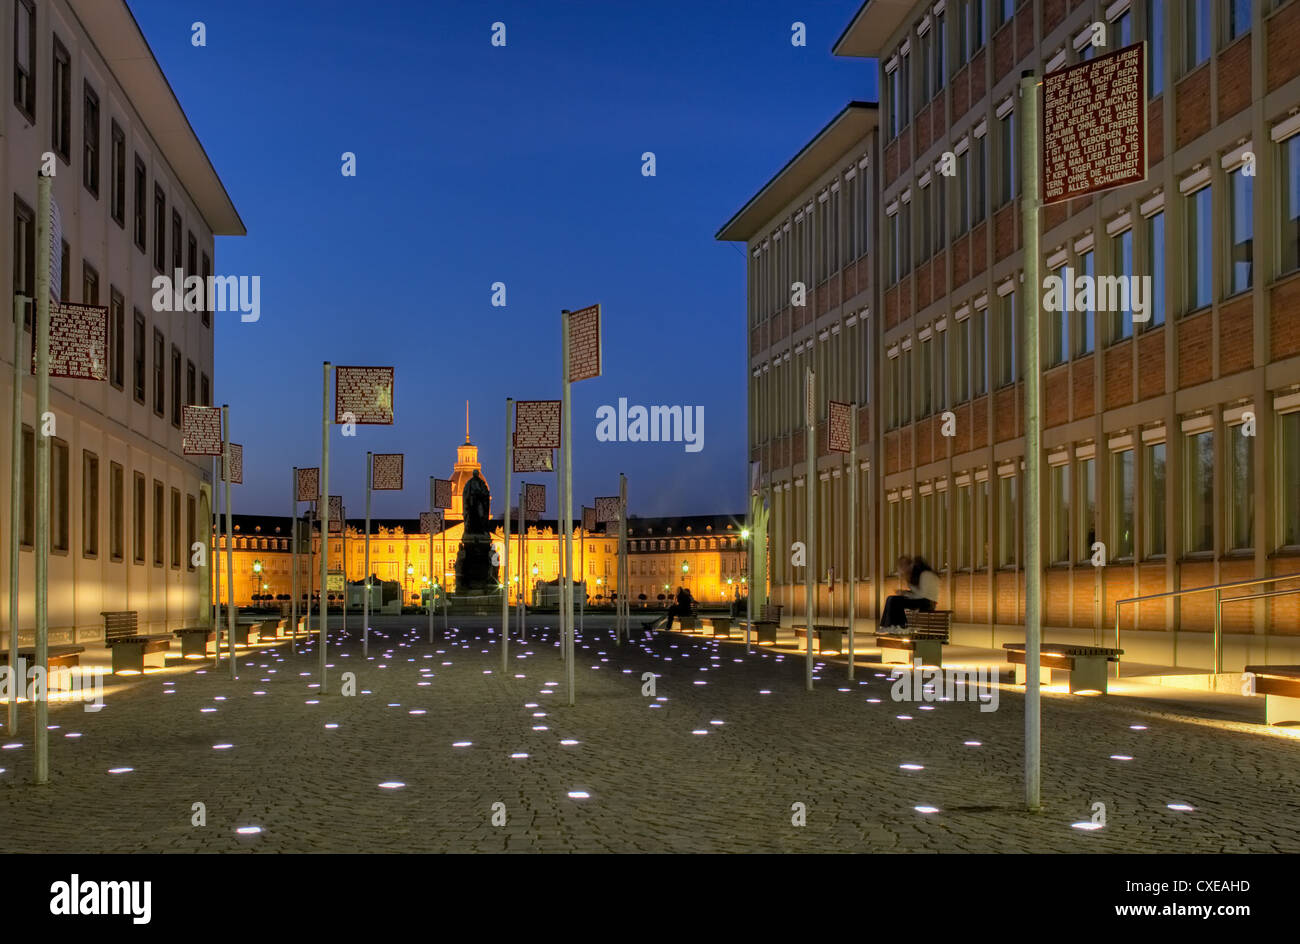 Karlsruhe - the place of fundamental rights for the evening overlooking the castle - Stock Image